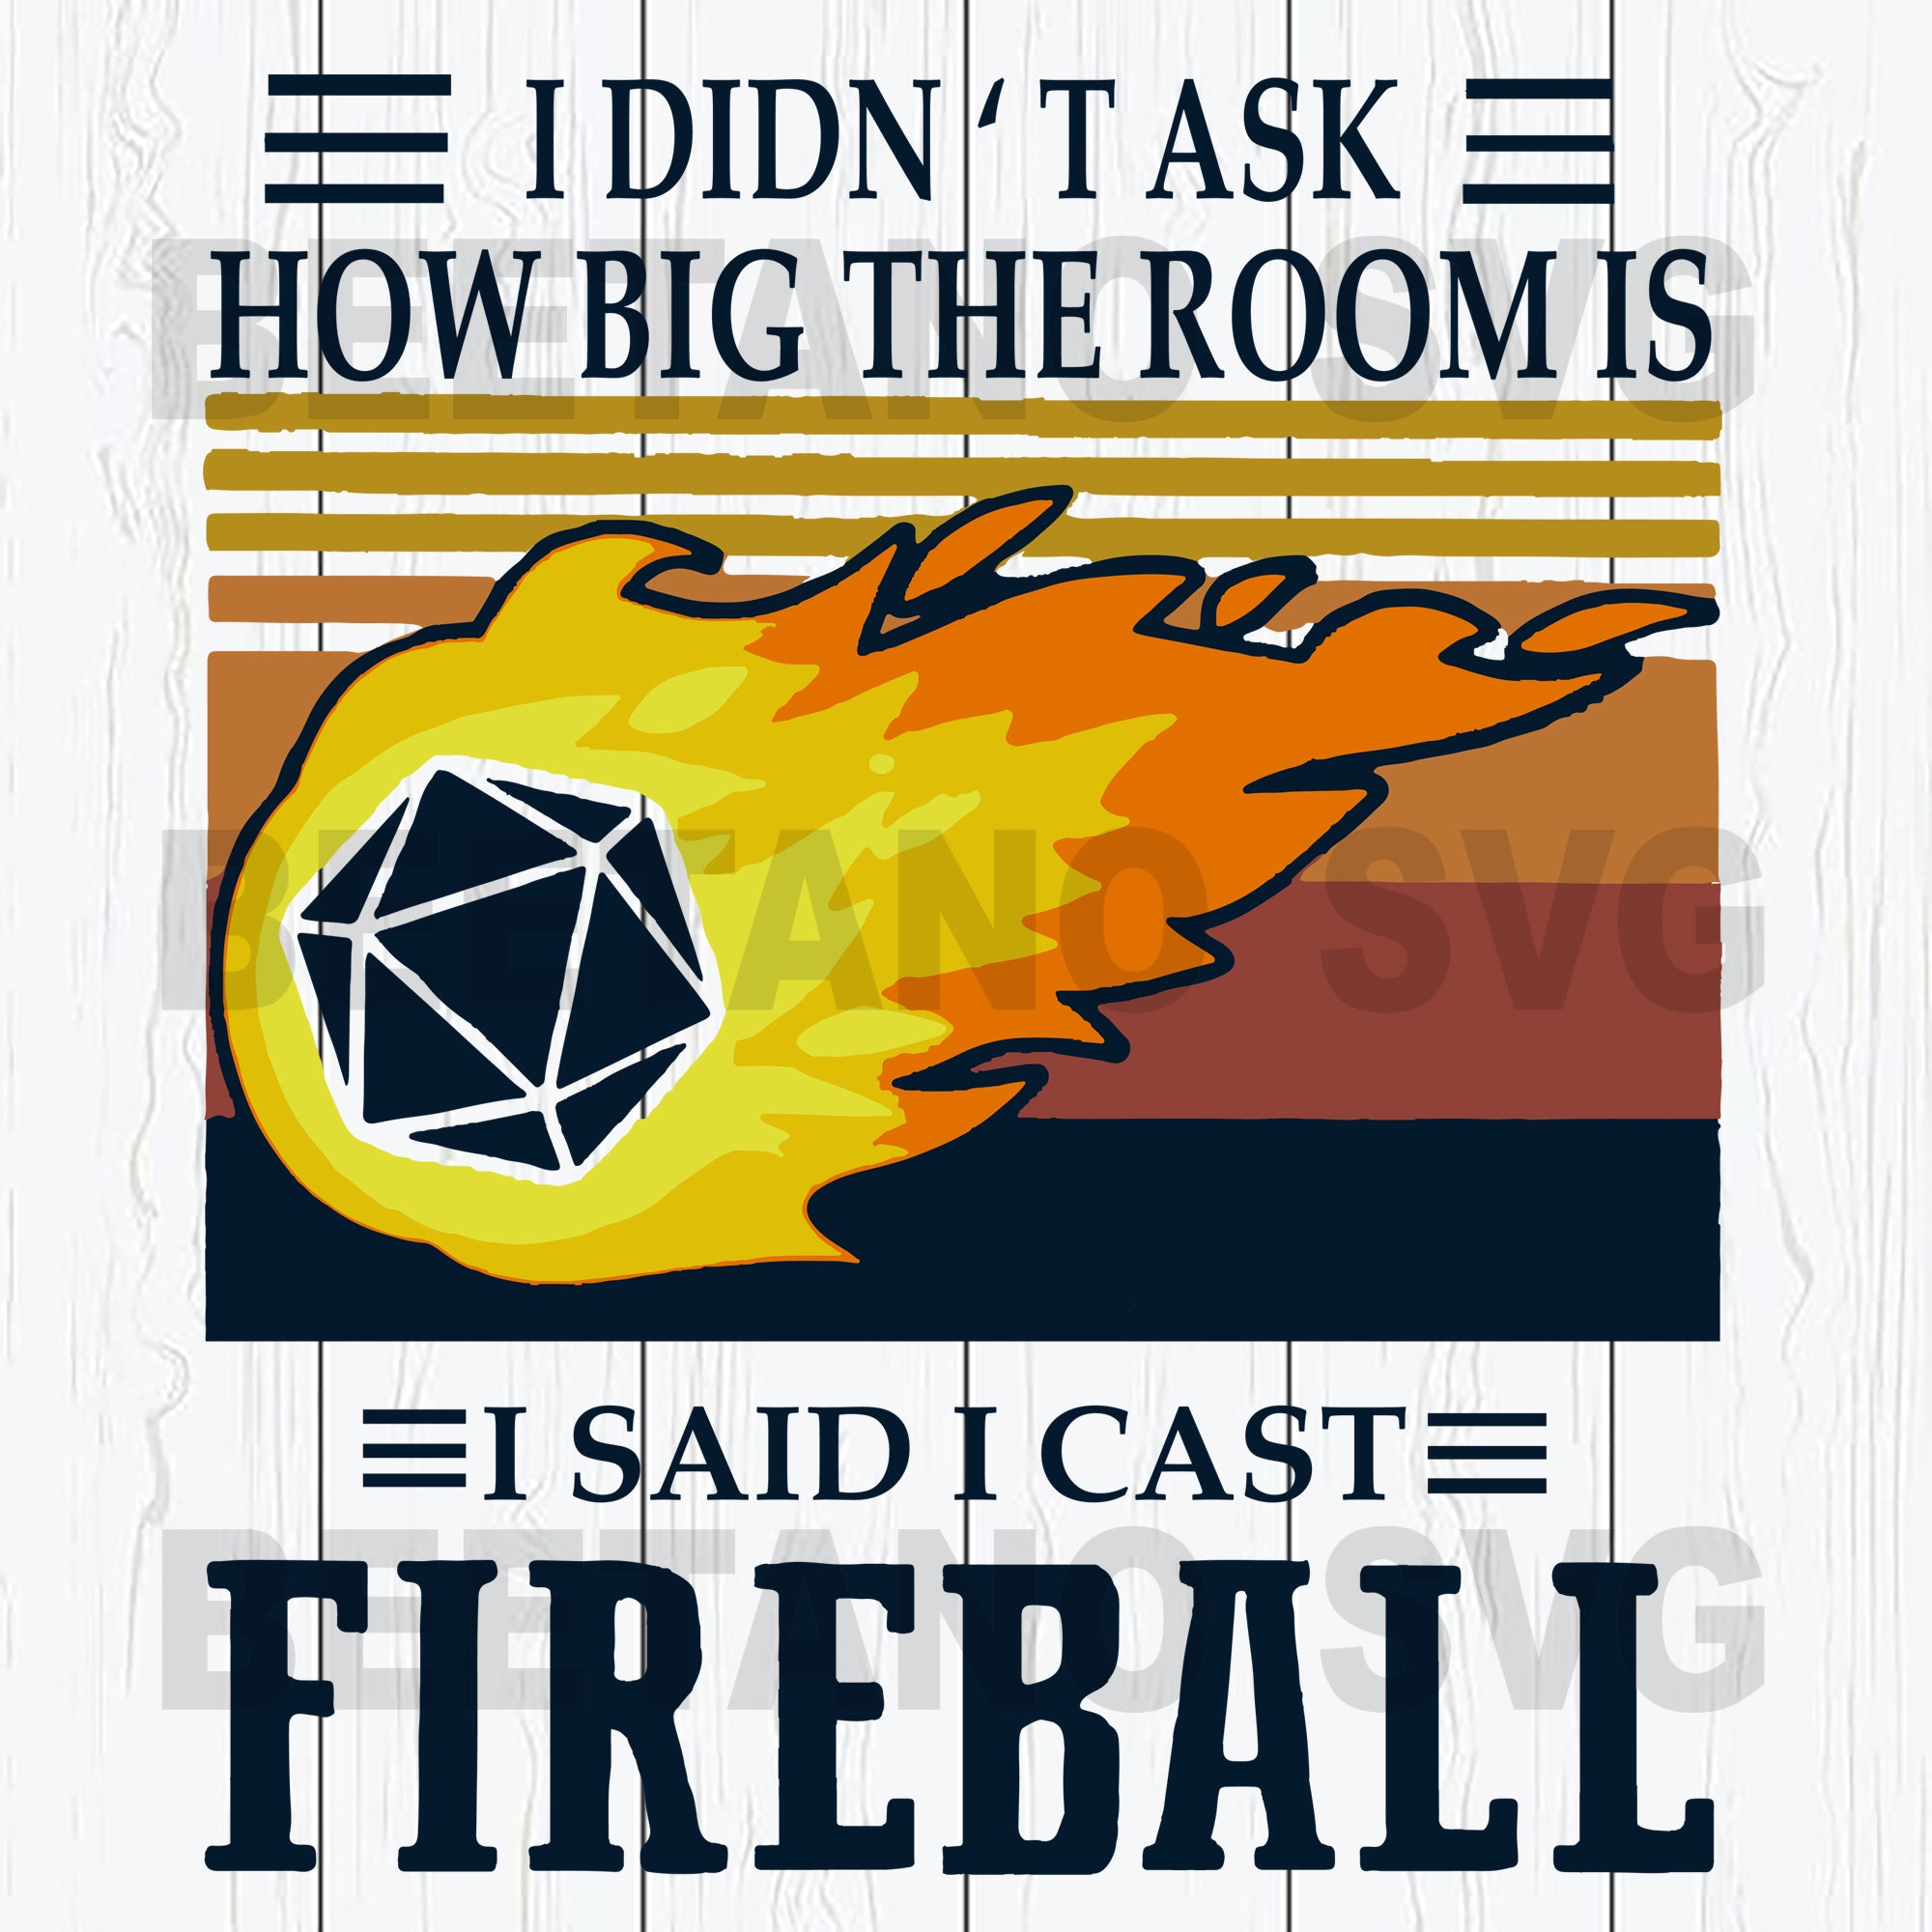 I Didn't Ask How Big The Room Is I Said I Cast Fireball Dungeons And Dragon